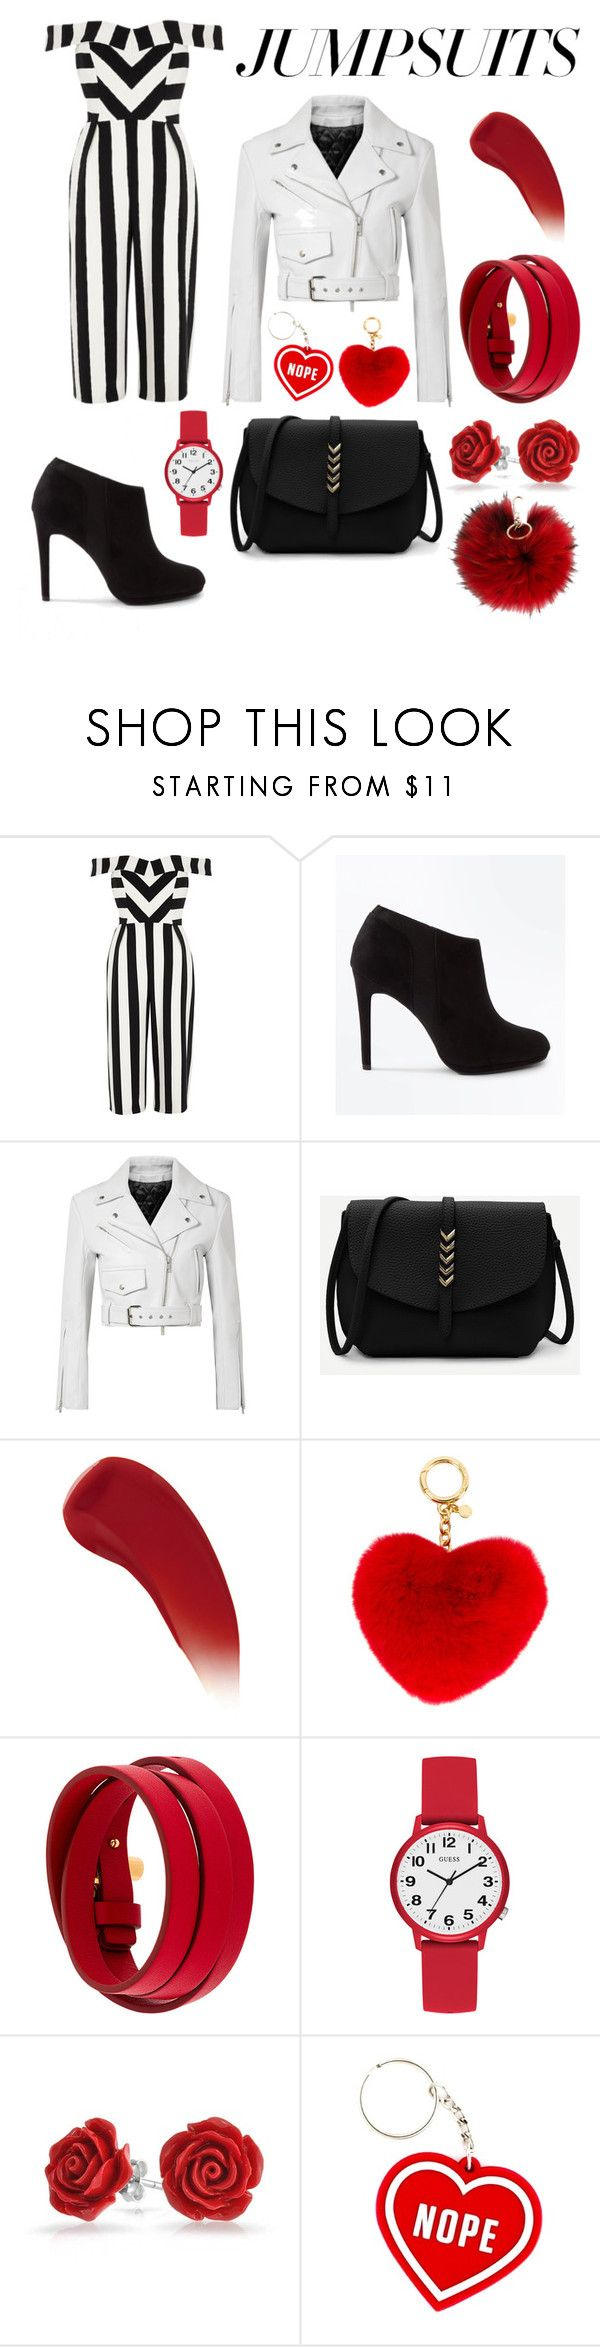 """""""Black, White and Red"""" by gmonster12 ❤ liked on Polyvore featuring River Island, New Look, Calvin Klein 205W39NYC, Lipstick Queen, MICHAEL Michael Kors, Tom Ford, GUESS, Bling Jewelry, Furla and jumpsuits"""